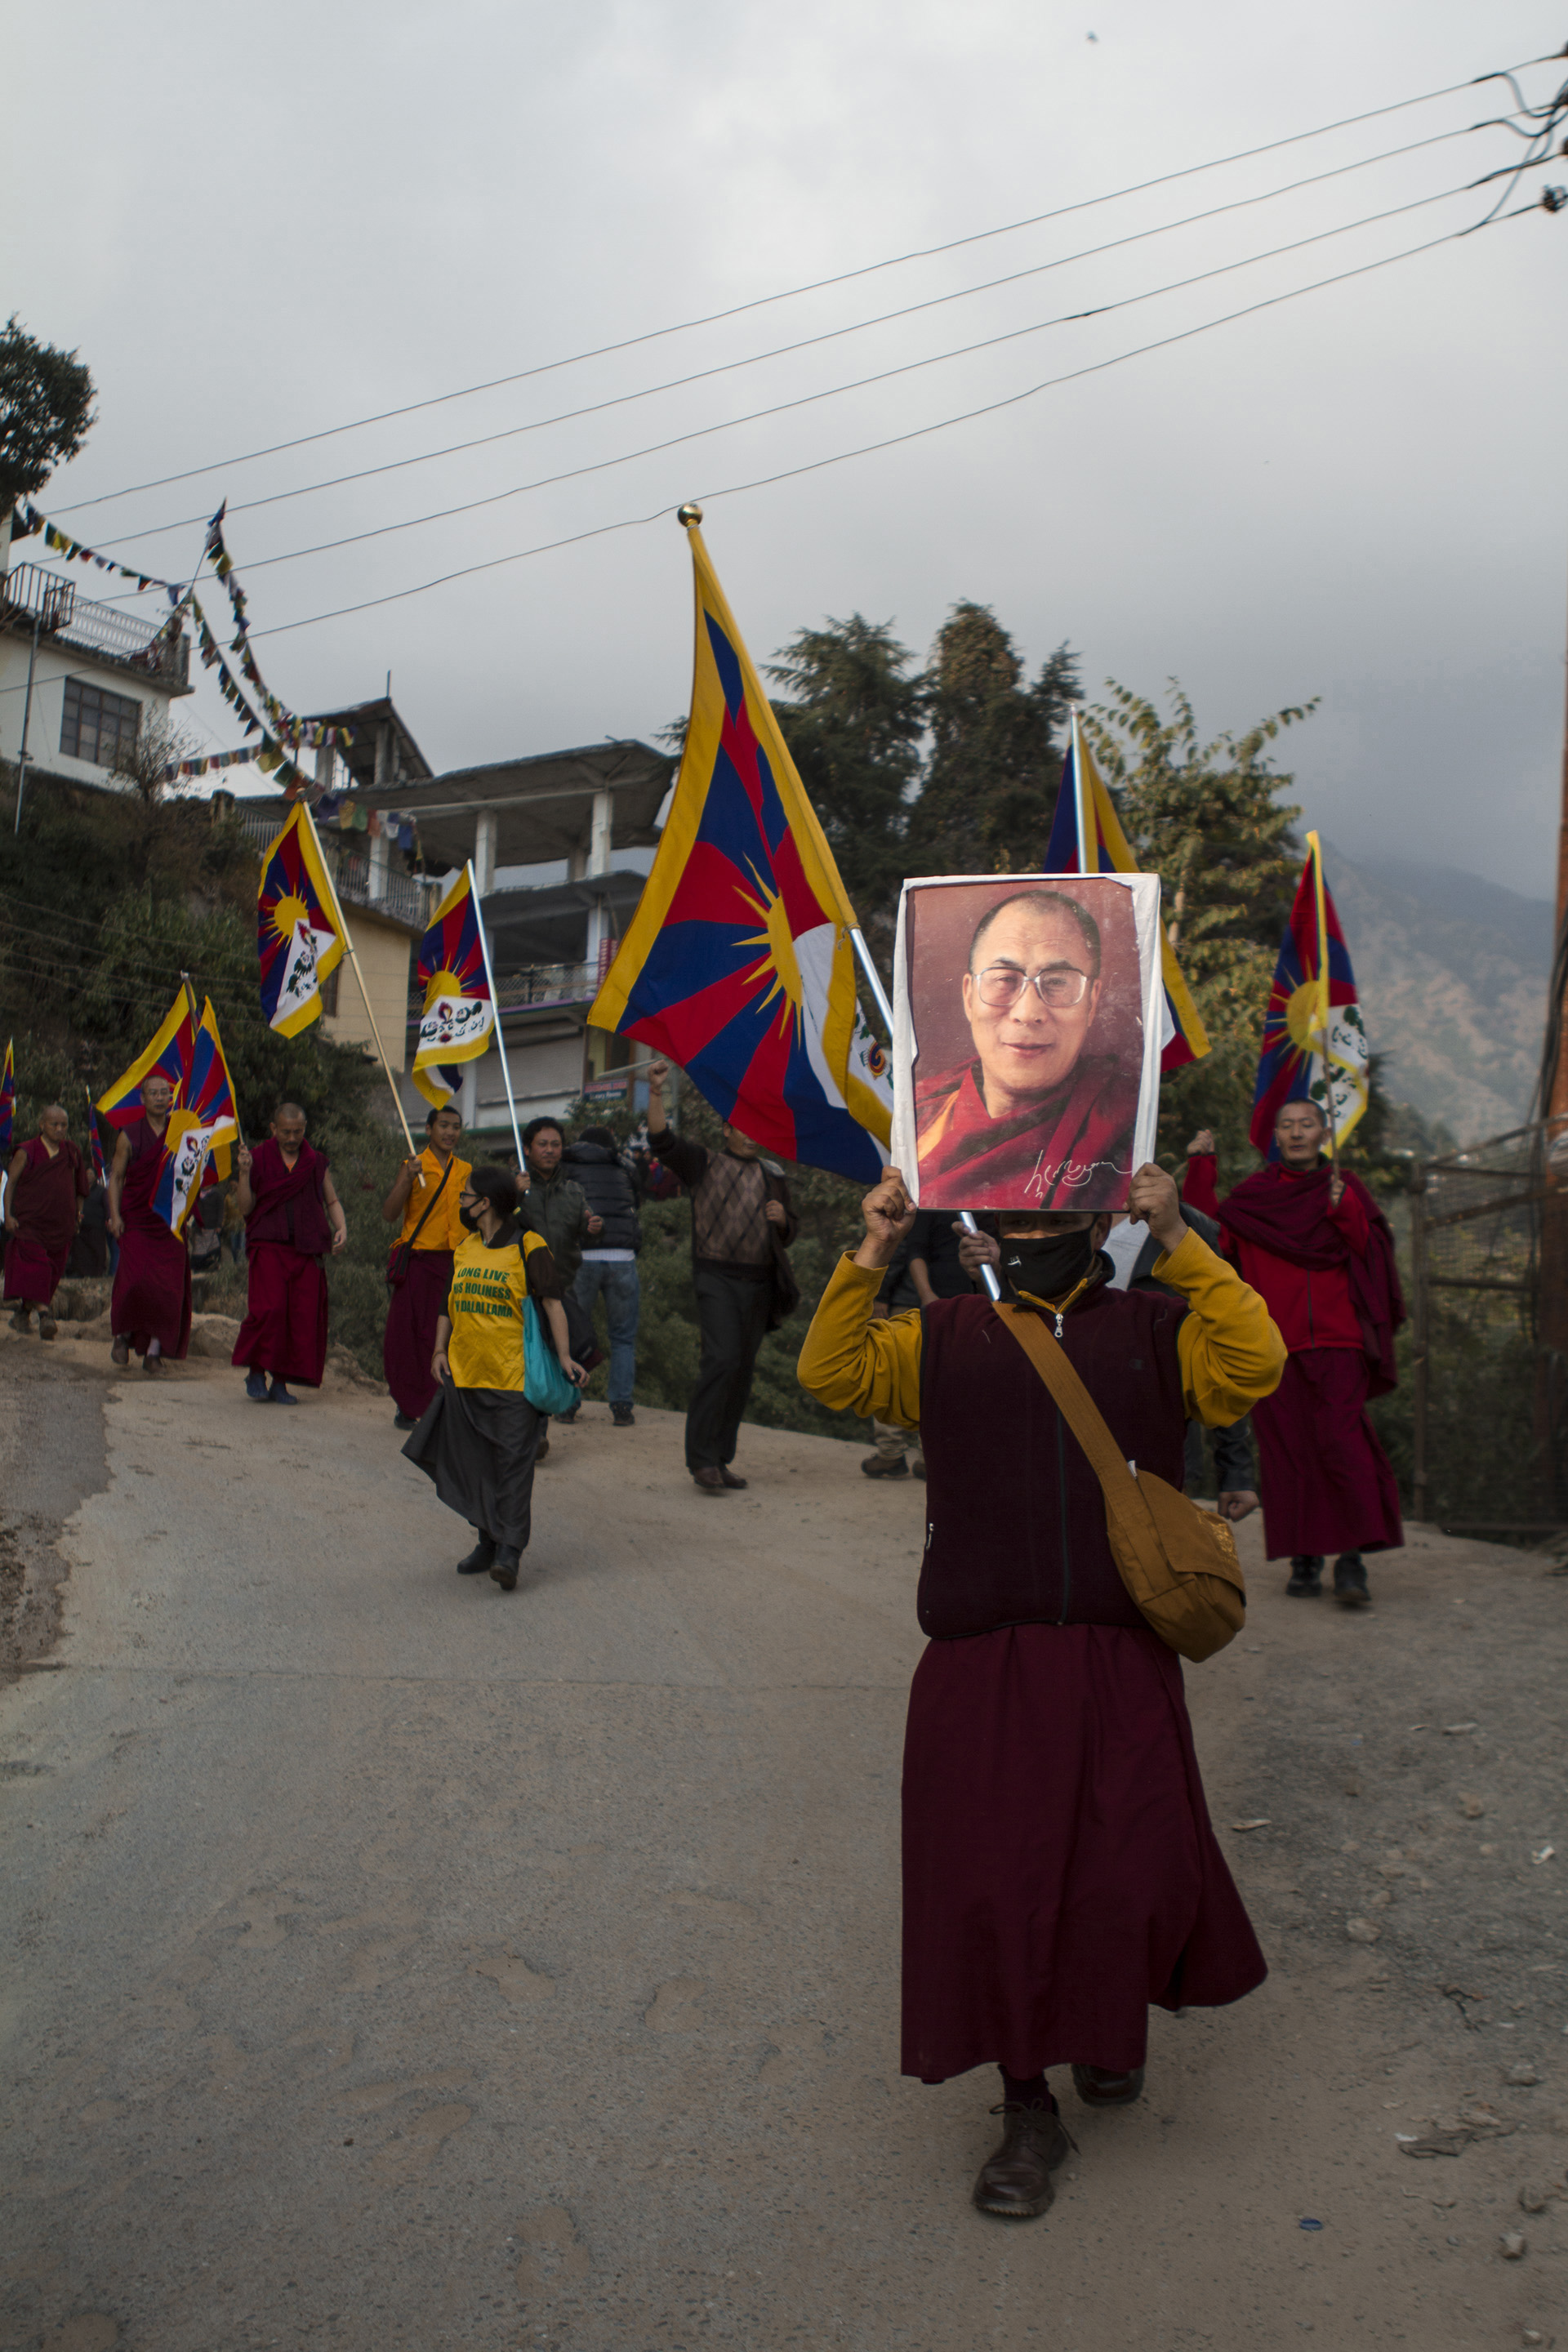 8 November, 2012 - McLeod Ganj   Tibetan monks have been at the forefront of a non-violent struggle for freedom in Tibet. As evening draws in, monks from Namgyal monastery solemnly take to the streets for a candlelight vigil following the news of yet another self-immolation inside Tibet.